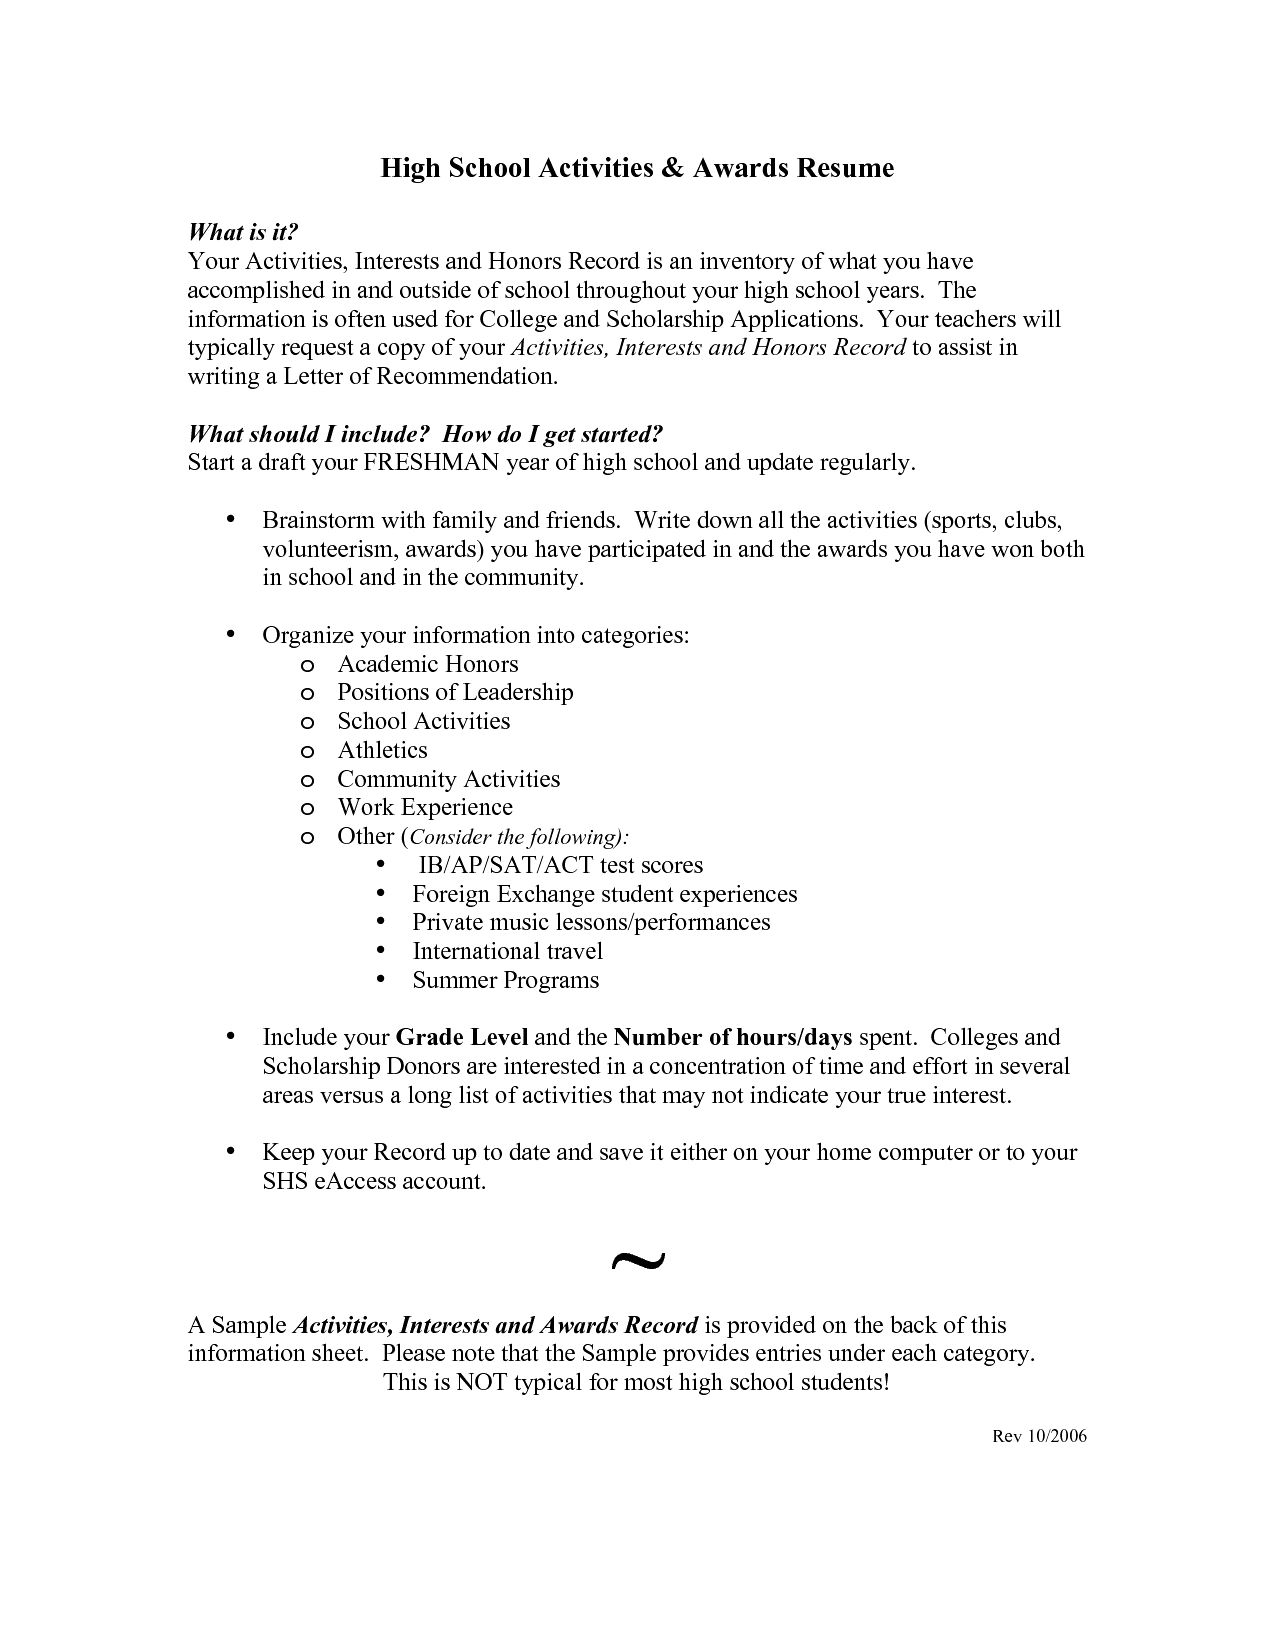 Hobbies For Resume Writing Good Interests Personal Interest Cover